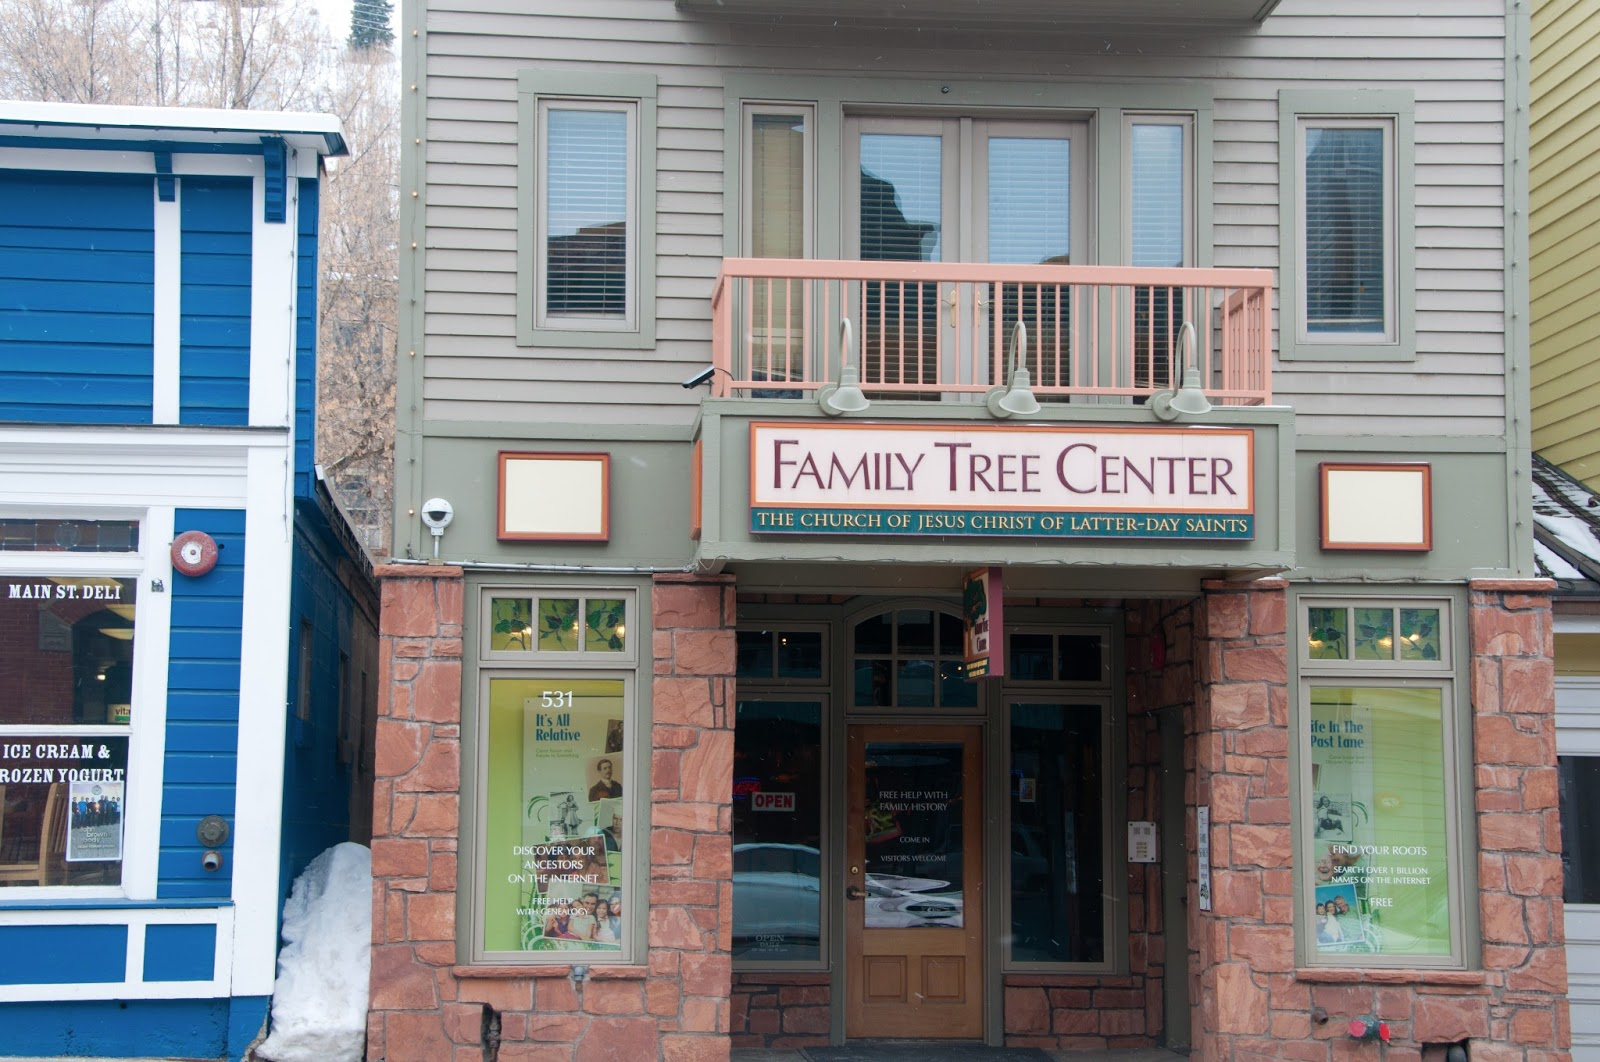 travel blog, travel utah, park city utah, park city, fashion blog, fashion blogger, style blog, style blogger, mens fashion, mens fashion blog, mens style, mens style blog, womens style blog, anthropologie ootd blog, anthropologie ootd, anthropologie, ootd, mens ootd, womens ootd, tory burch, tory burch purse, steve madden shoes, spike shoes, tracy reese, leather jacket, all saints, bed stu boots, white wash, white wash jeans, jcrew, ray ban, ray ban aviator, stipes,